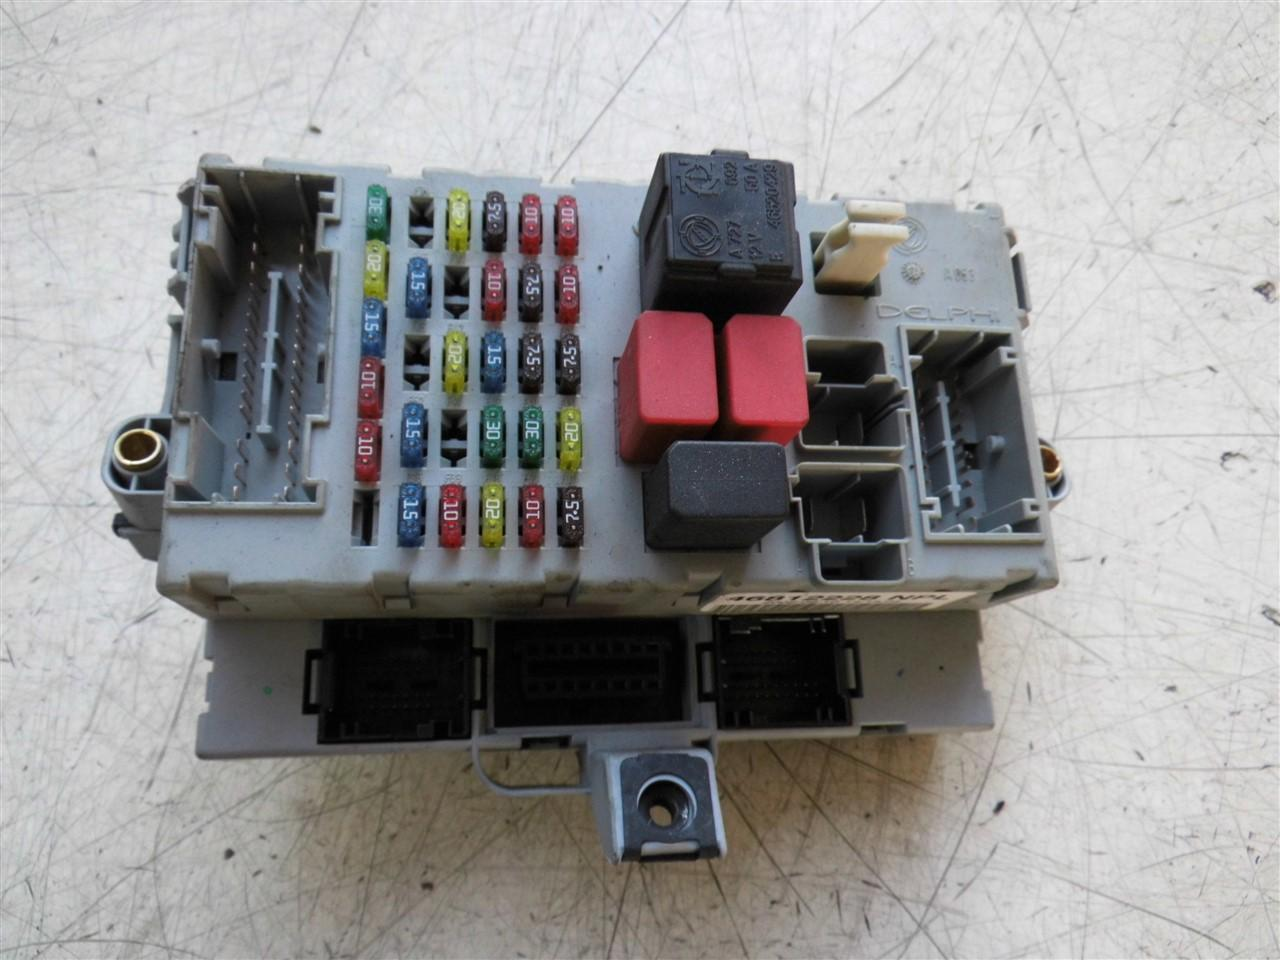 2002 Fiat Punto Mk2 12 8v Fuse Box 46812228 1999 Picclick Uk 1 Of 1only Available